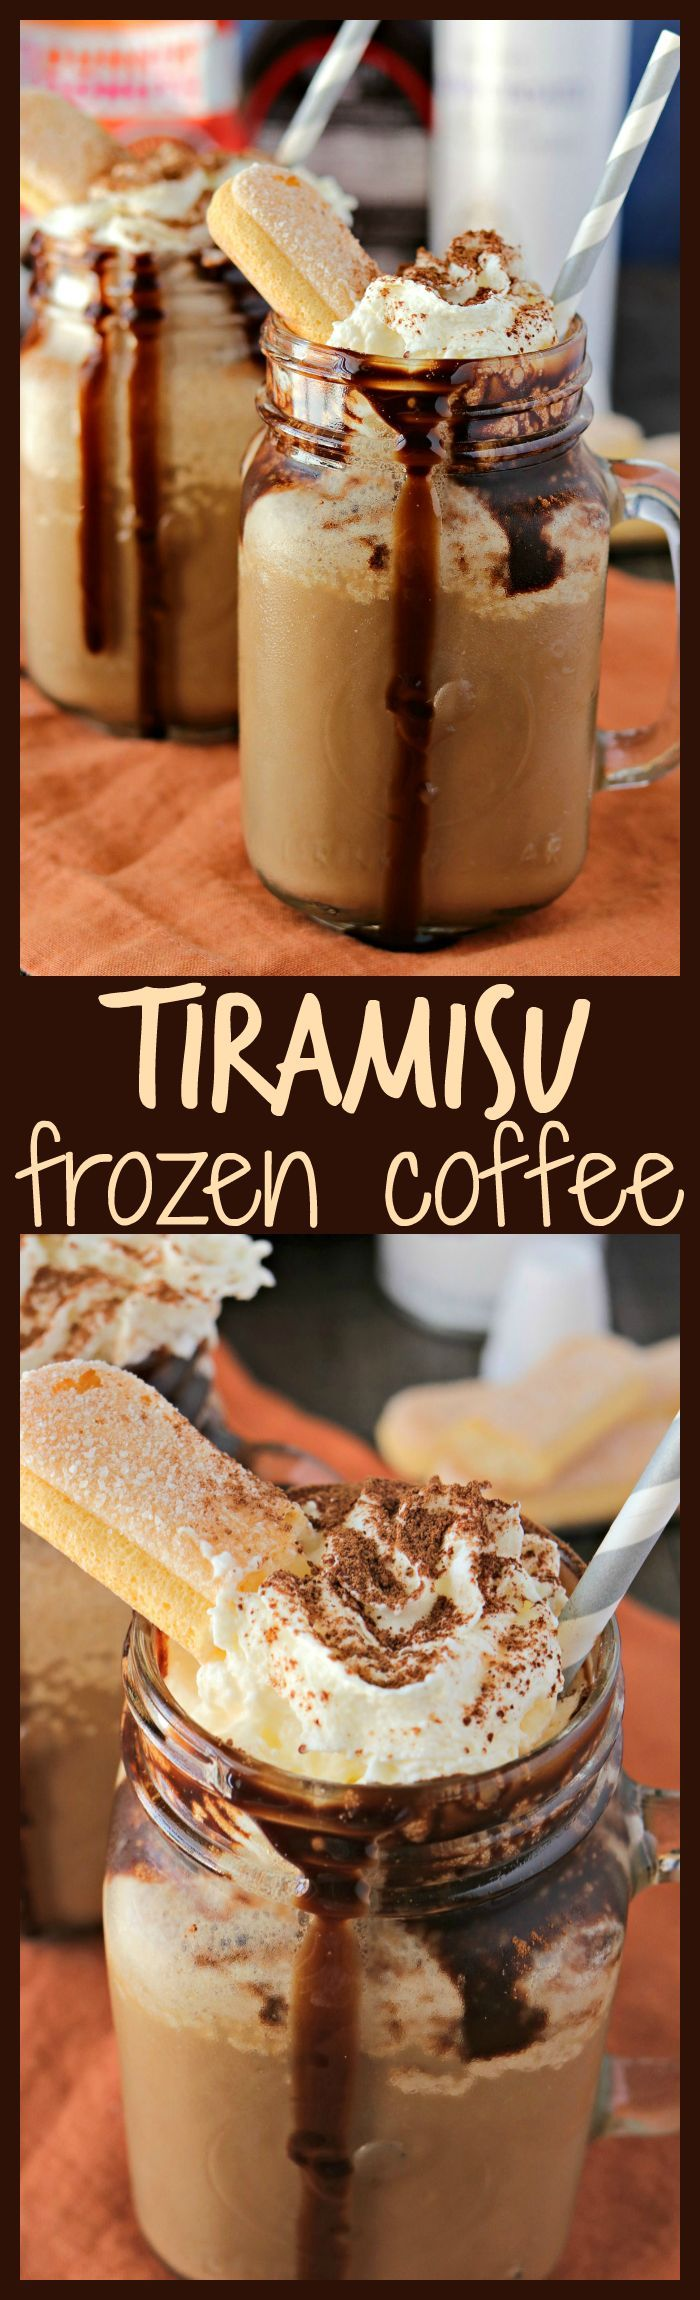 Tiramisu Frozen Coffee - Make your morning coffee even more exciting with a boost from the flavors of tiramisu. Made with double-strength coffee, milk, creamy marscapone cheese, crushed ladyfingers, chocolate syrup, and crushed ice, this tiramisu frozen c